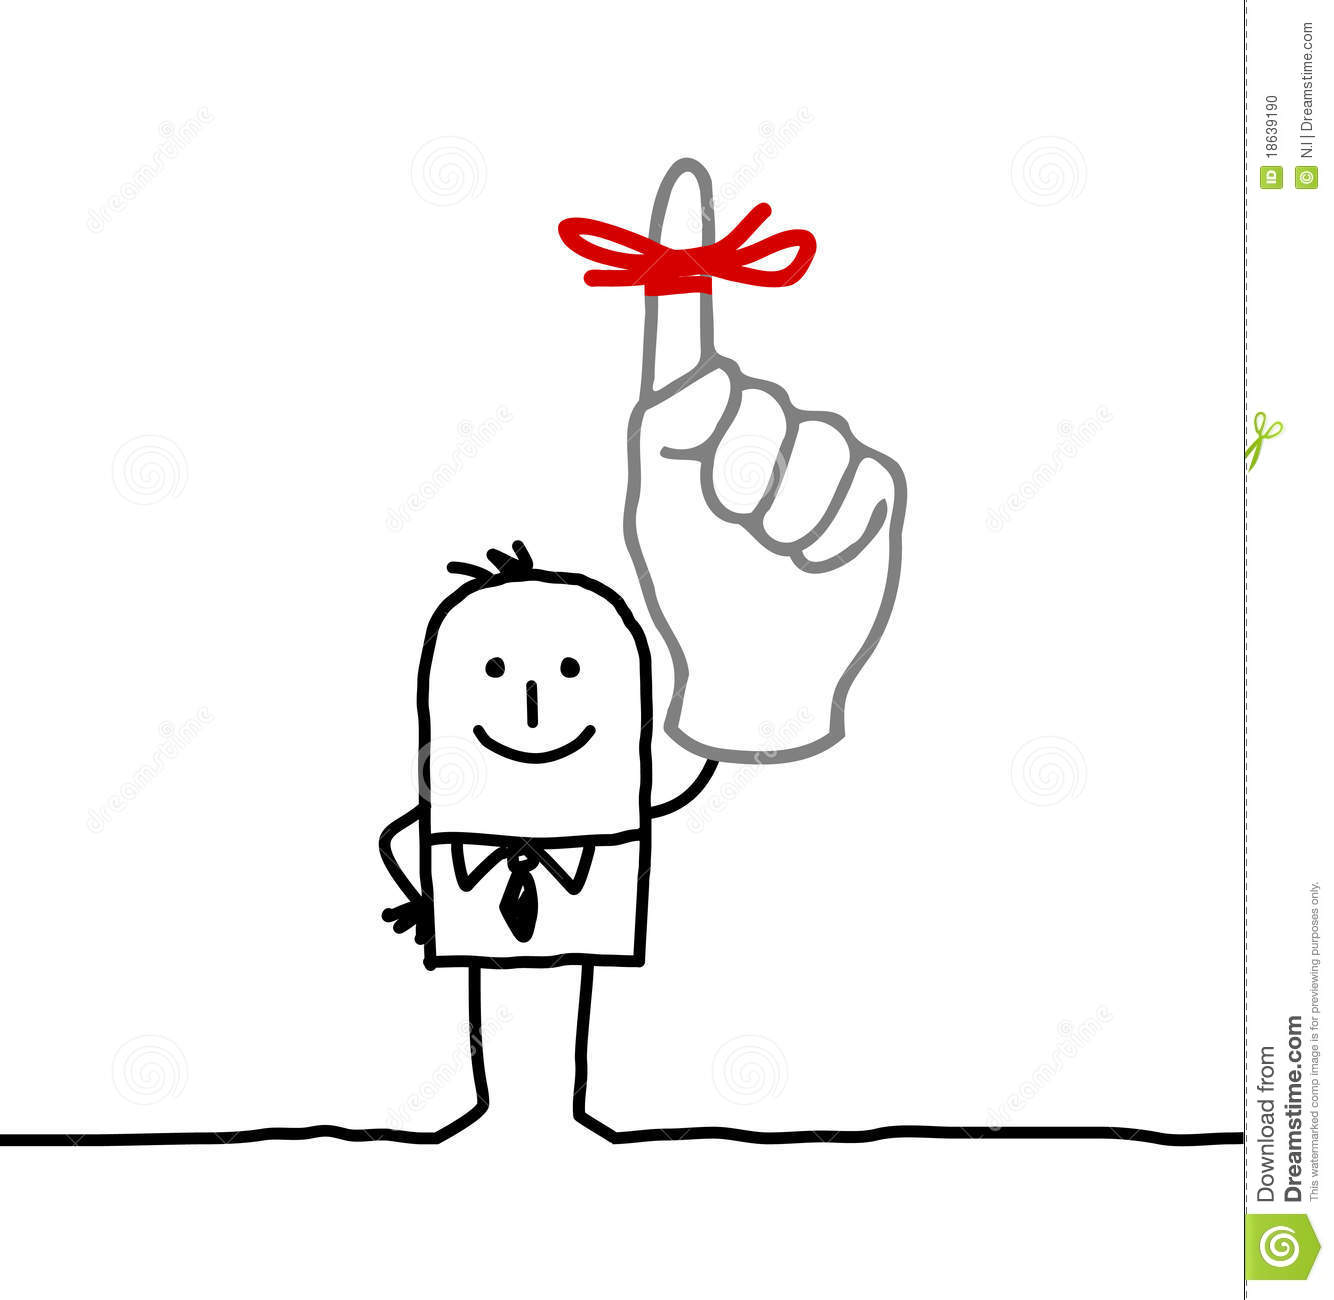 Finger with ribbon clipart image black and white stock Finger With Ribbon Clipart - Clipart Kid image black and white stock